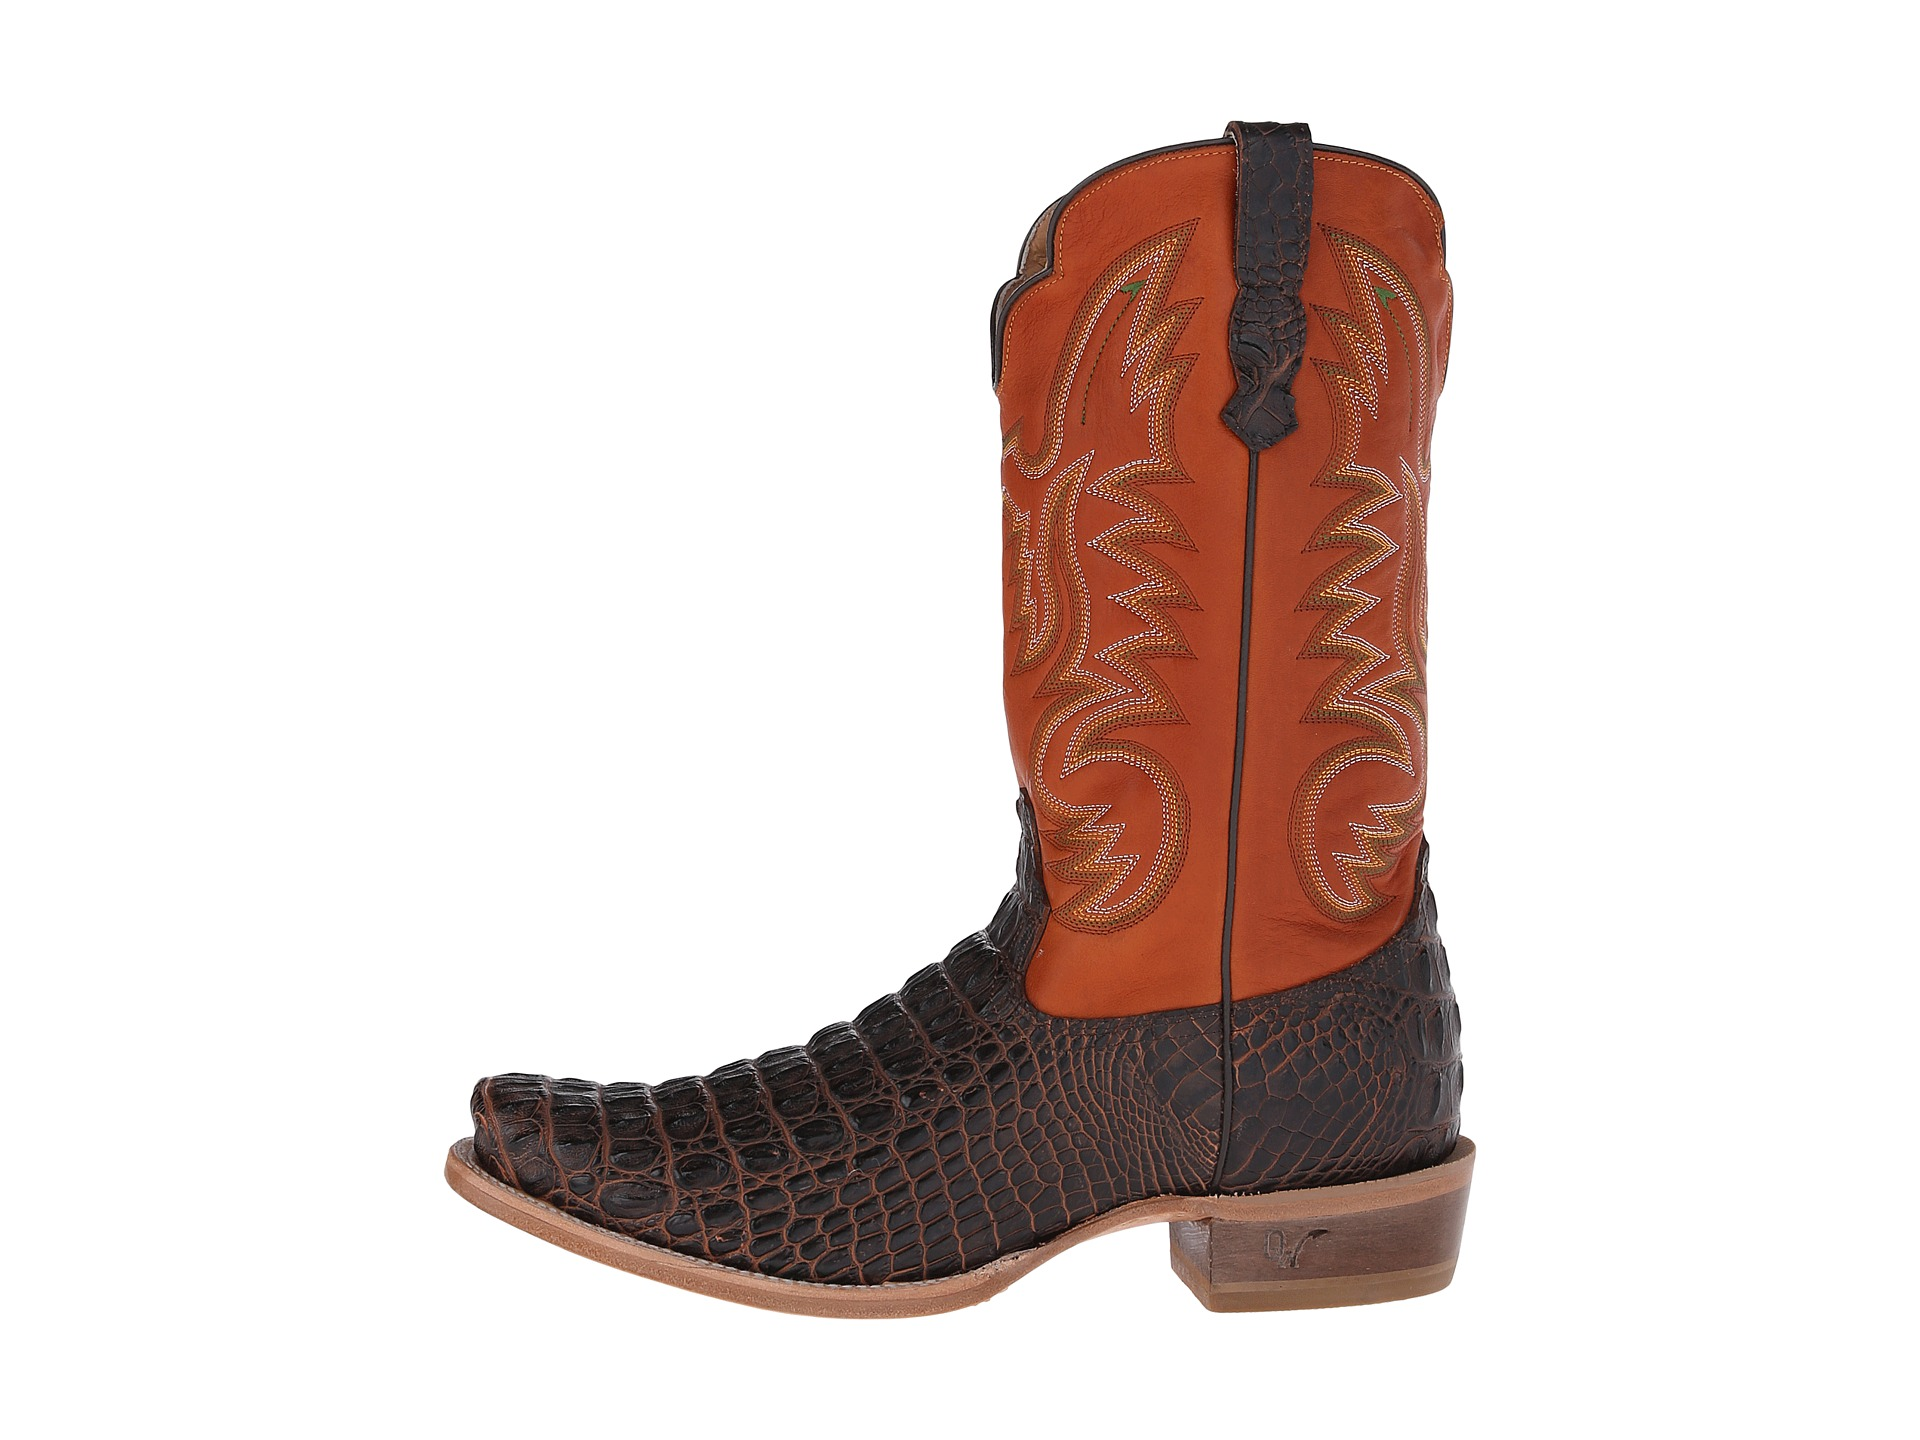 west boots 60004 zappos free shipping both ways